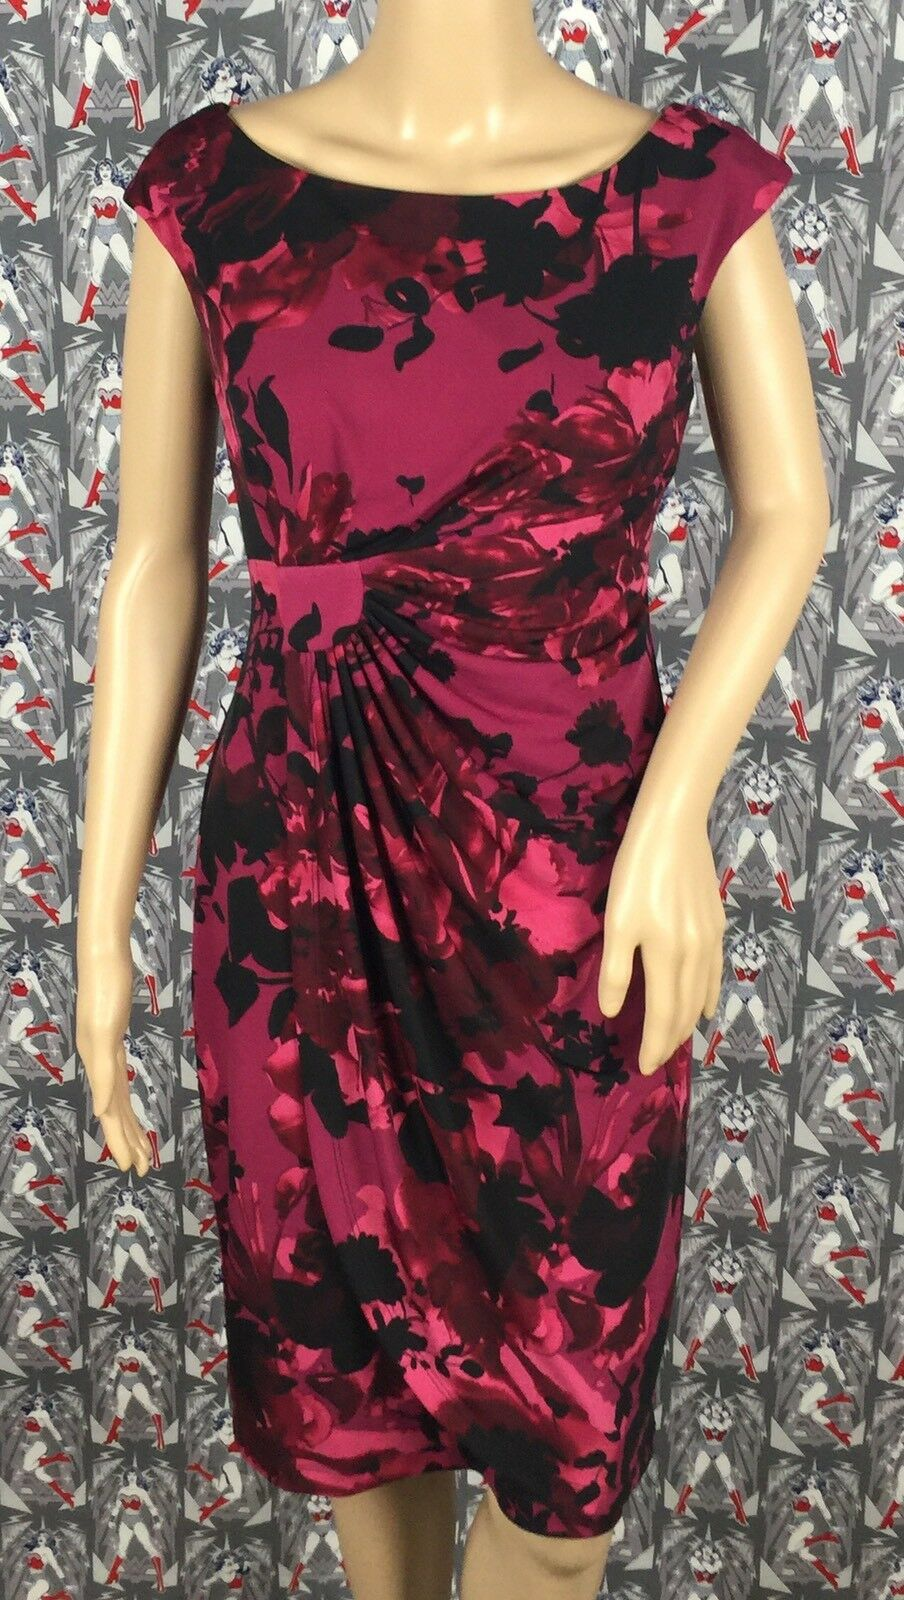 Connected Apparel Polyester Spandex Multicolord Floral Magenta Dress Size 6